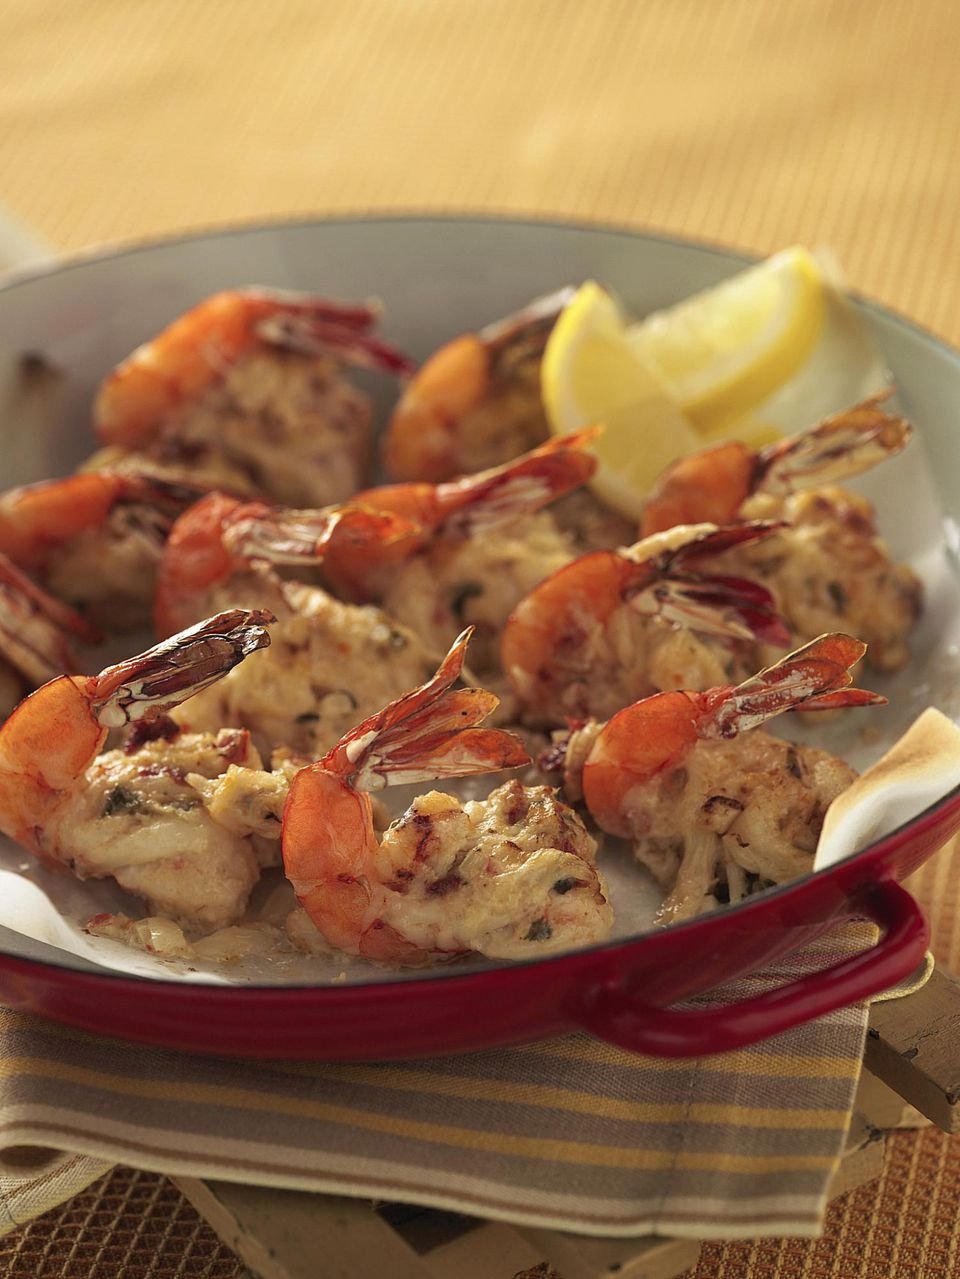 Baked Stuffed Jumbo Shrimp